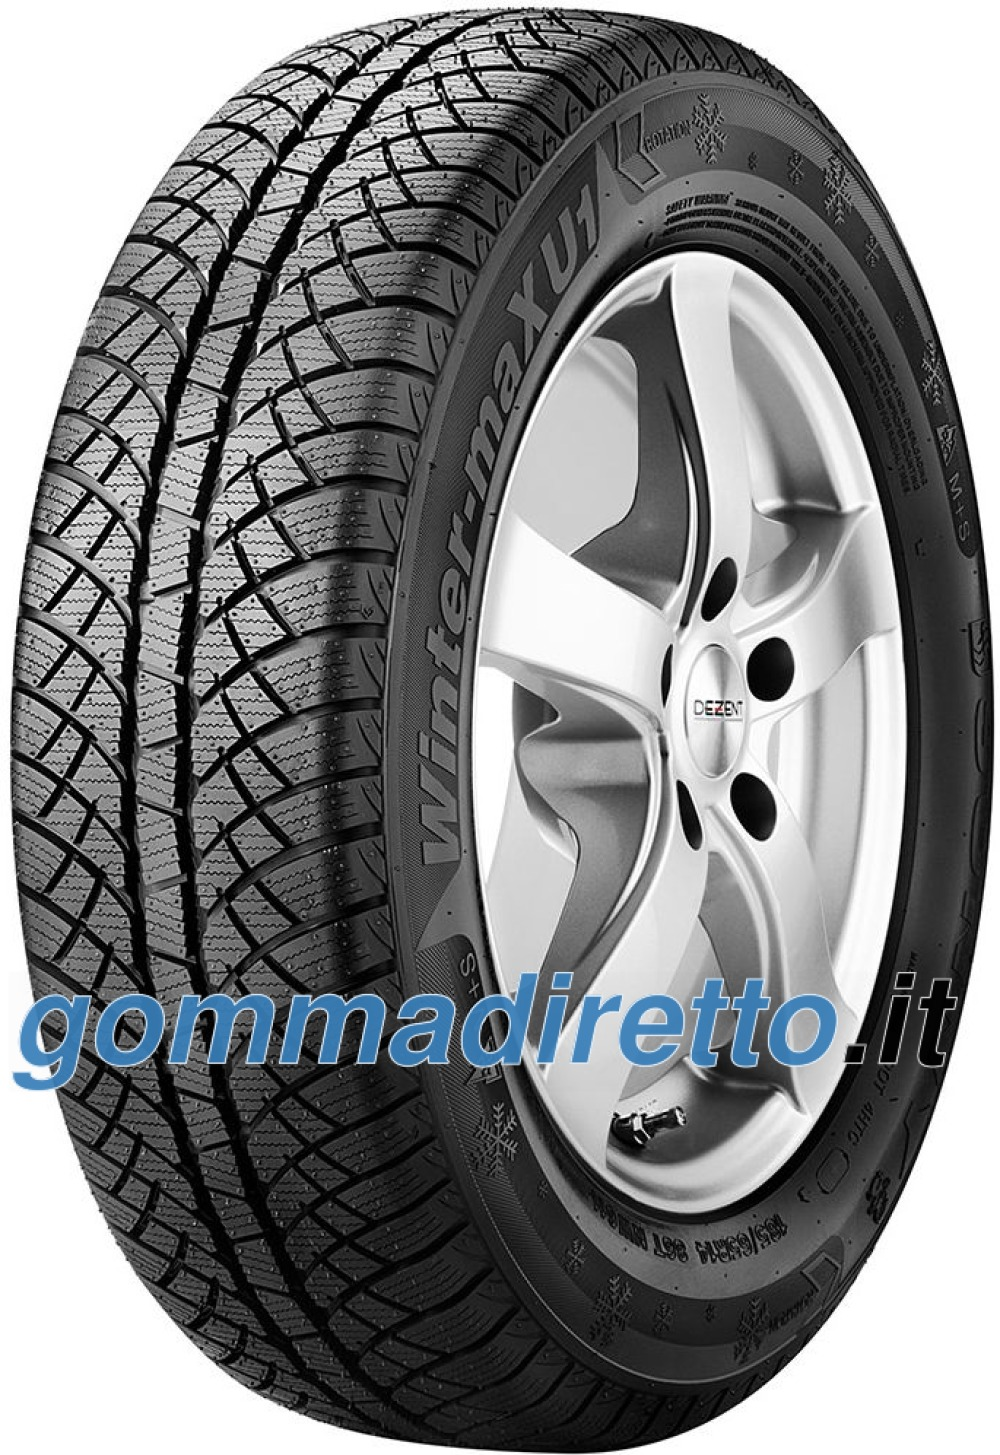 Image of Sunny Wintermax NW611 ( 175/70 R14 88T XL )